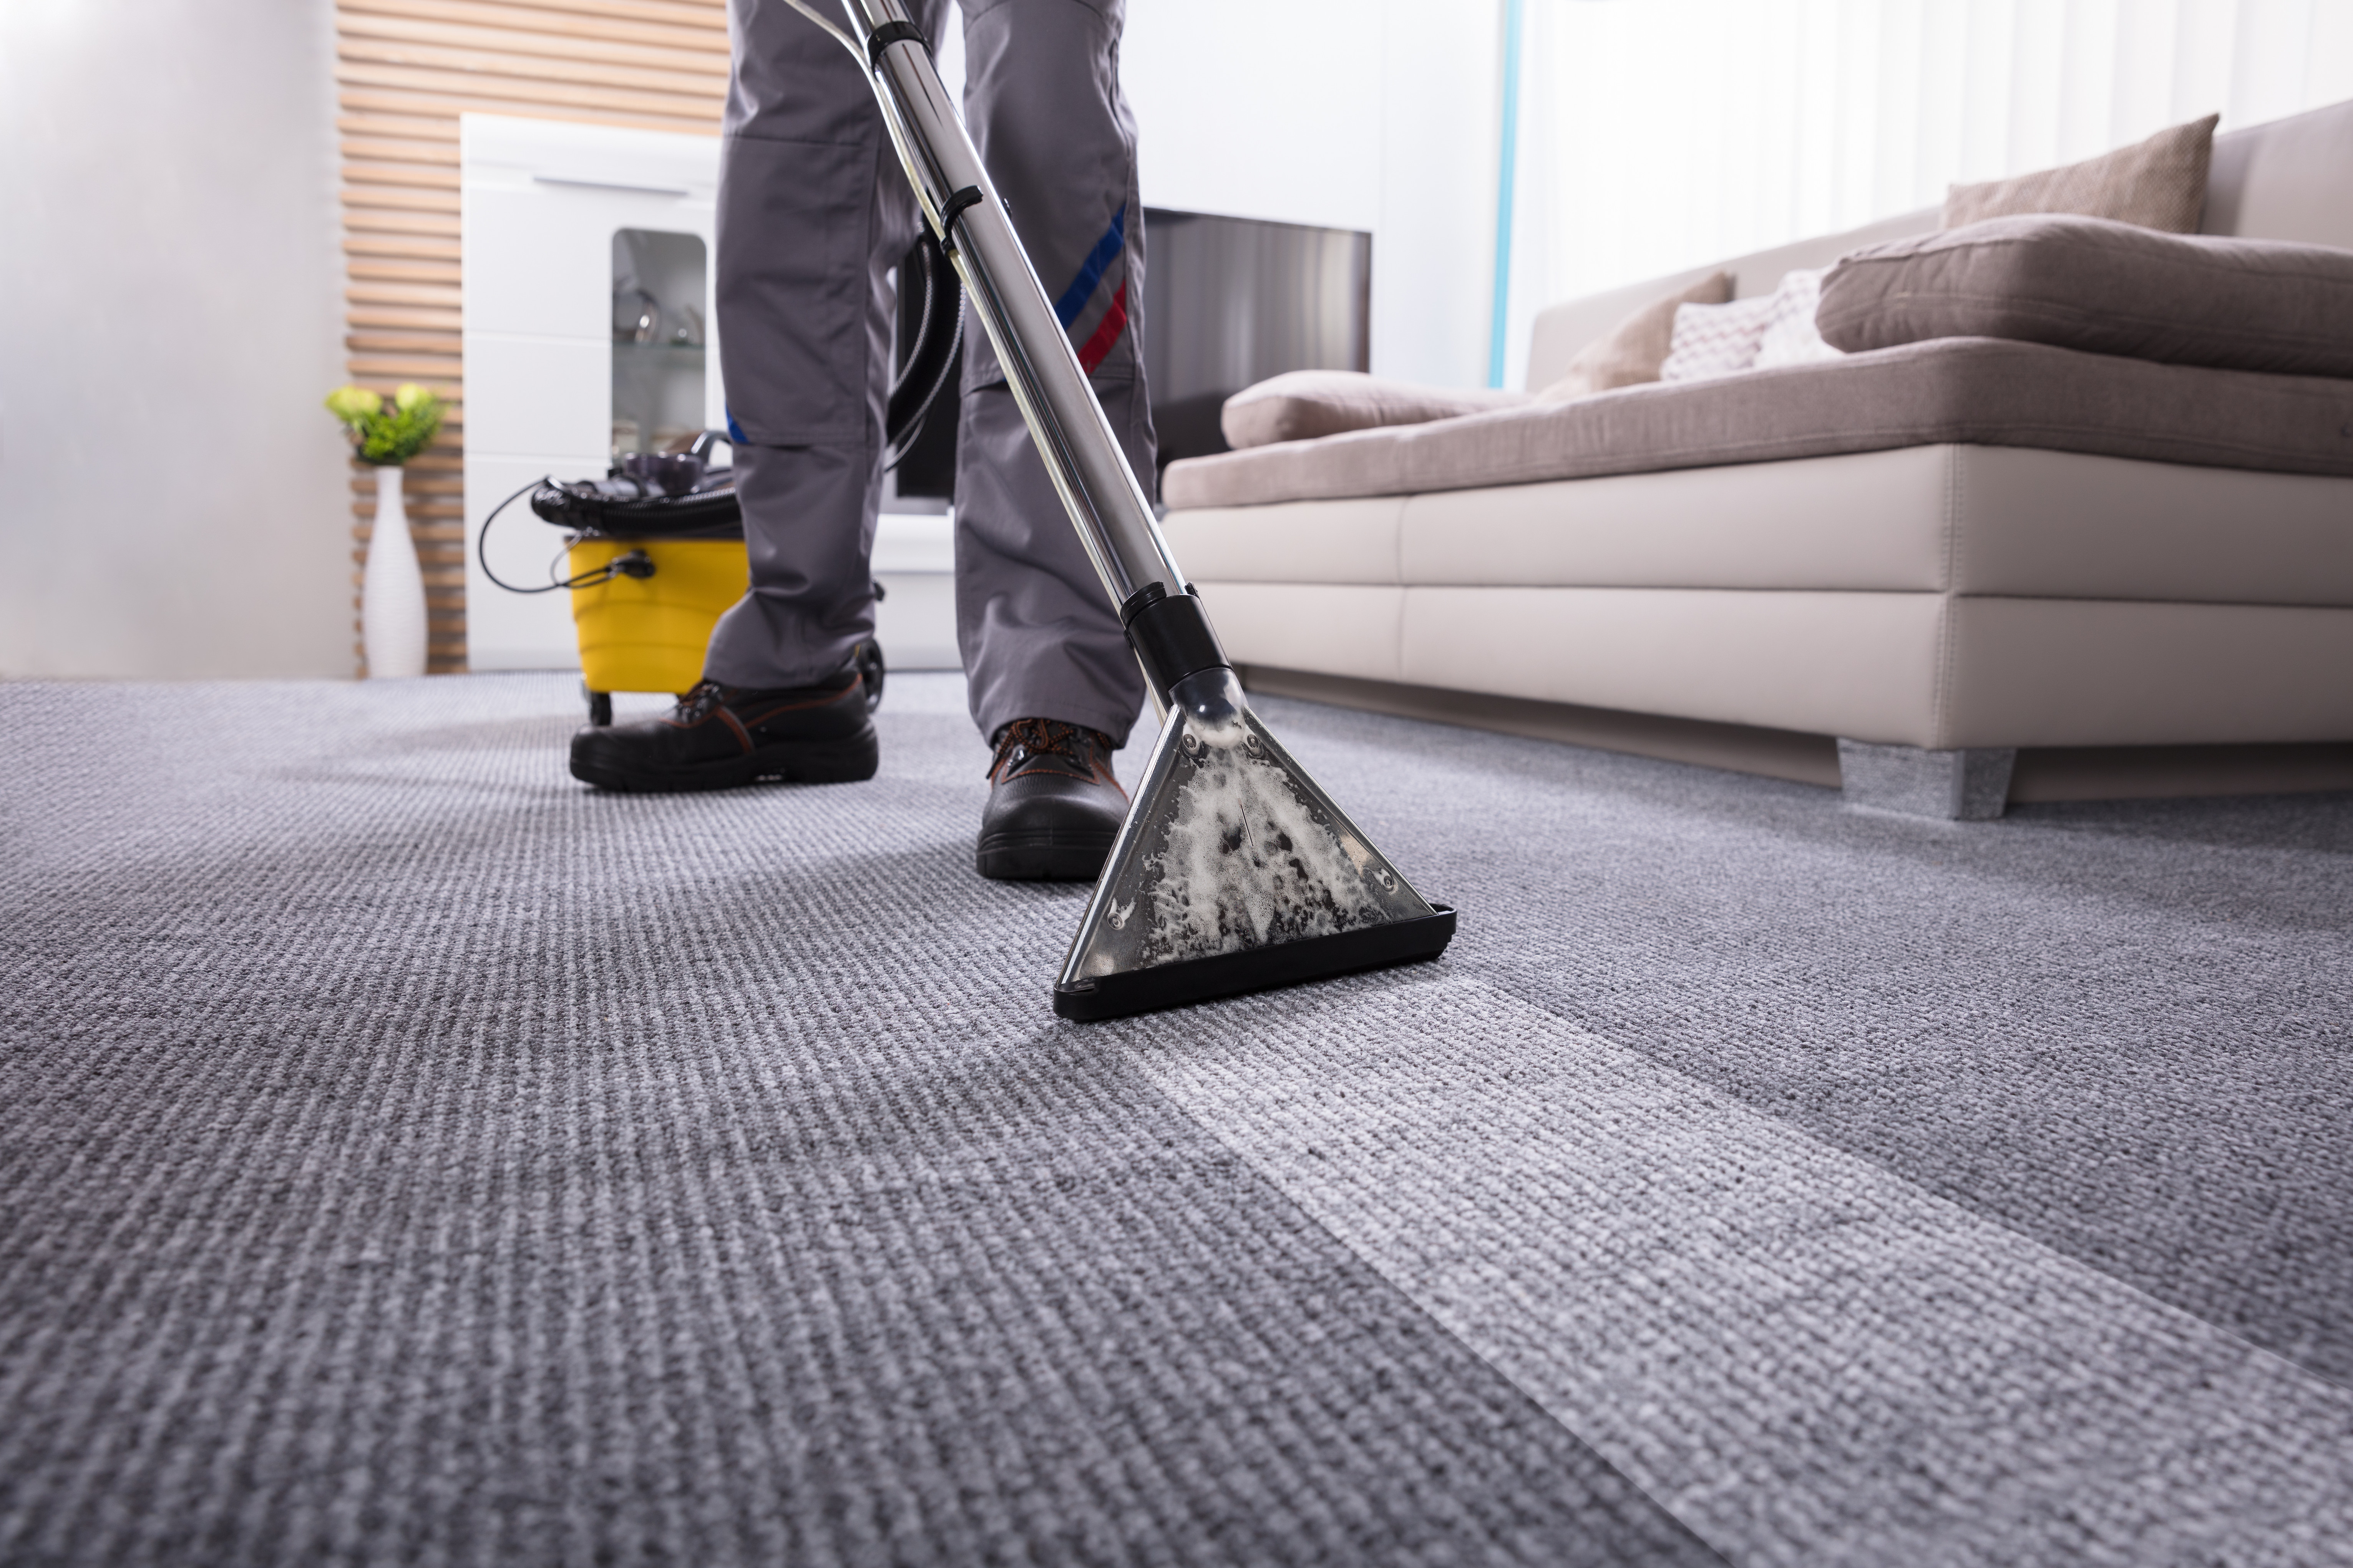 Carpet Cleaning - 6-7 m2